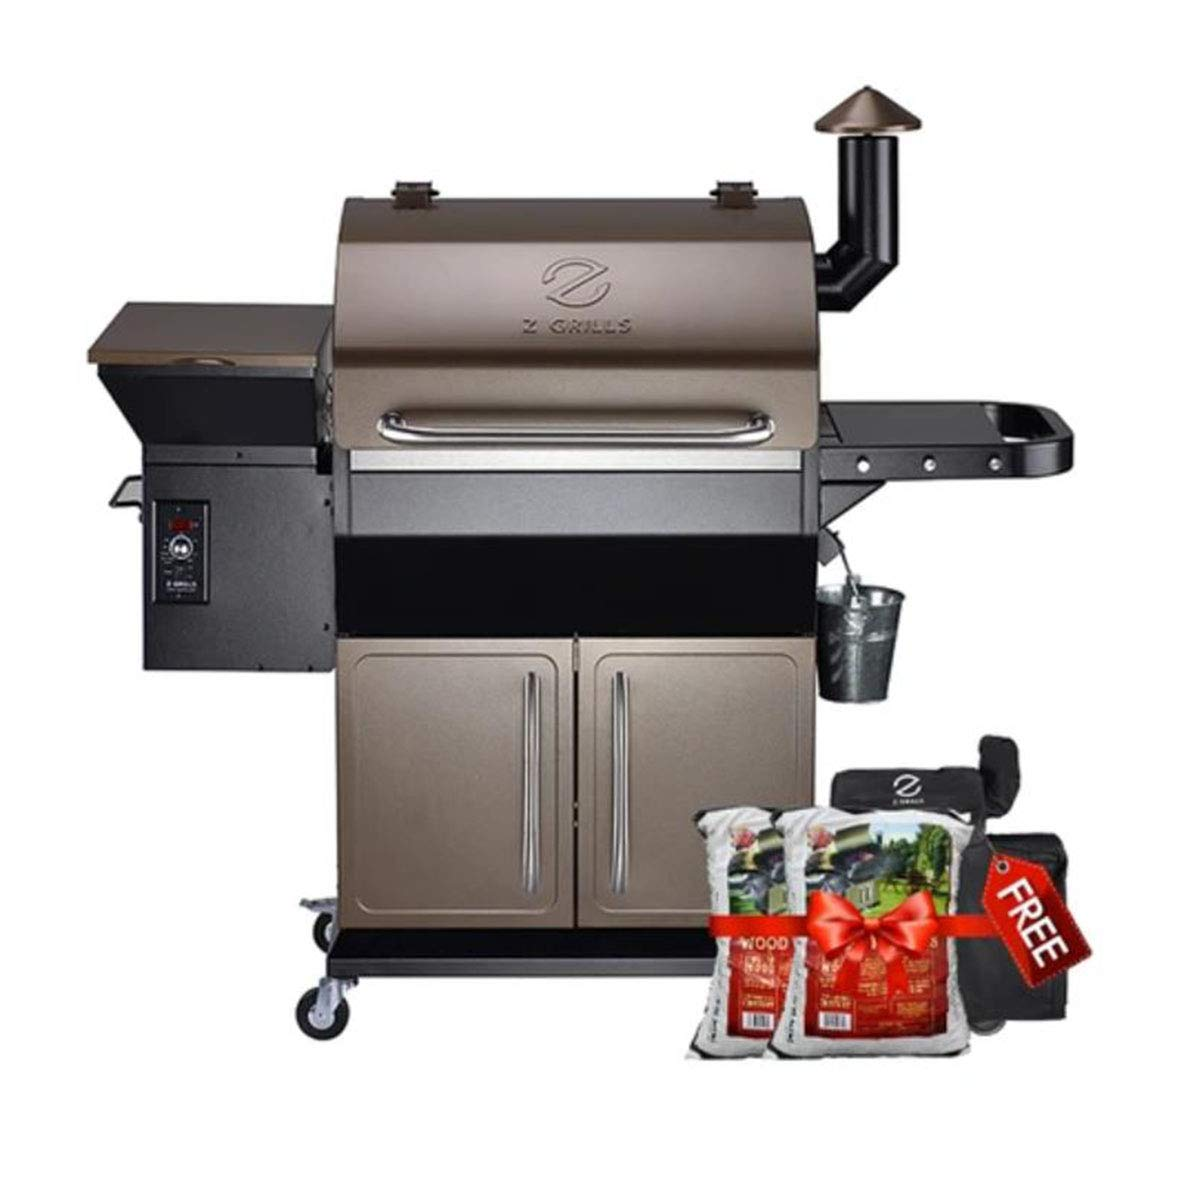 Z GRILLS 2020 Upgrated Wood Pellet Grill and Smoker 1000sqin BBQ Area 20LB Hopper 8-in-1 Grill Smart Digital Control Feeding Pellets (ZPG-1000D) Free Cover+2 Bags Oak Pellets